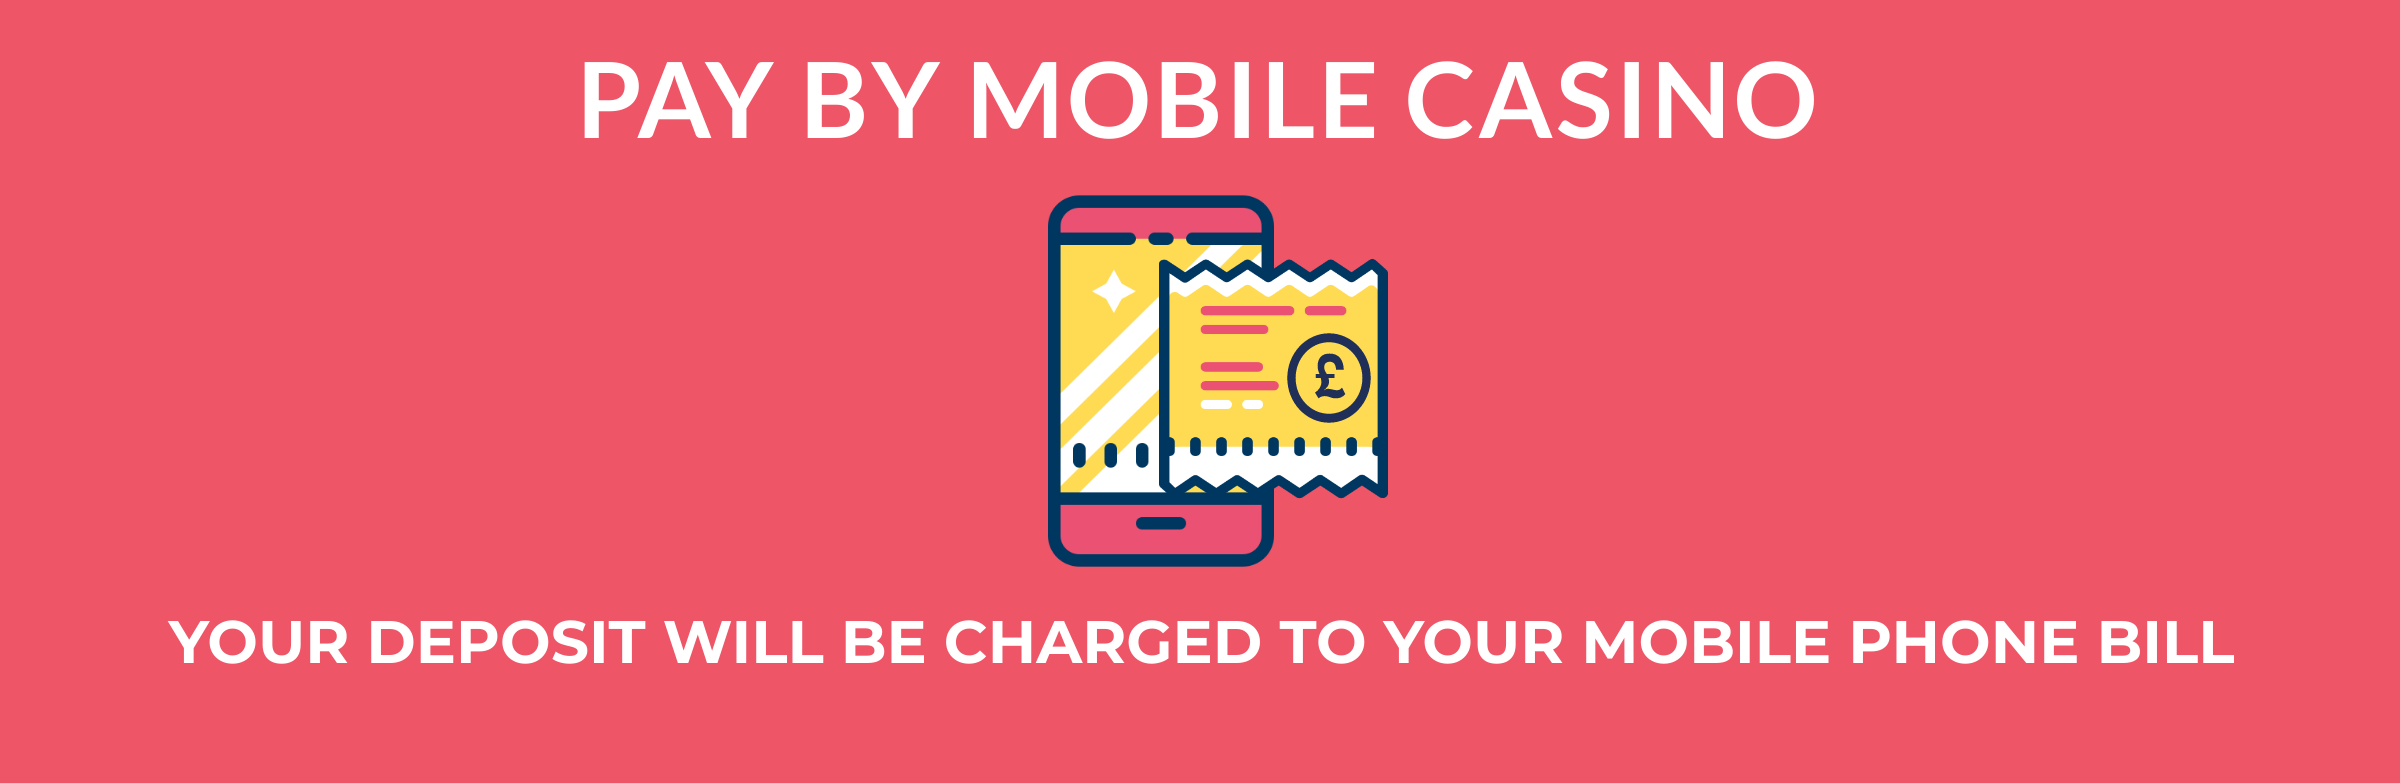 Casino Pay By Mobile